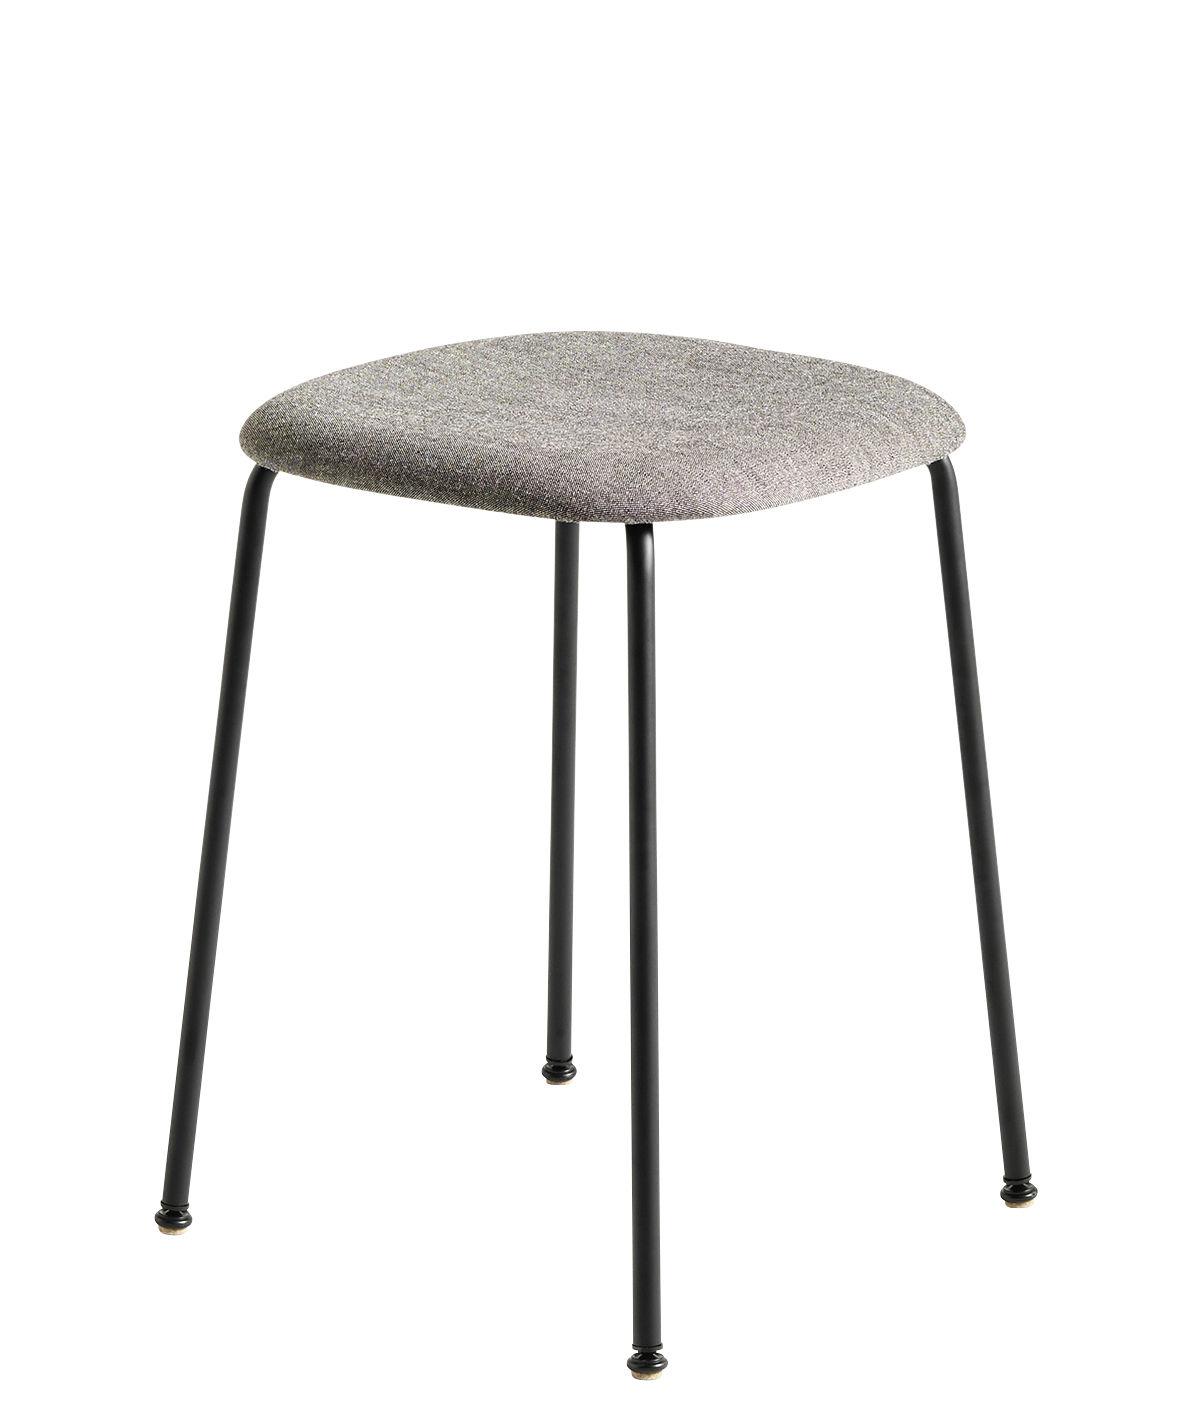 Furniture - Stools - Soft Edge 70 Stool - / Fabric by Hay - Grey fabric /Black legs - Kvadrat fabric, Lacquered steel, Plywood